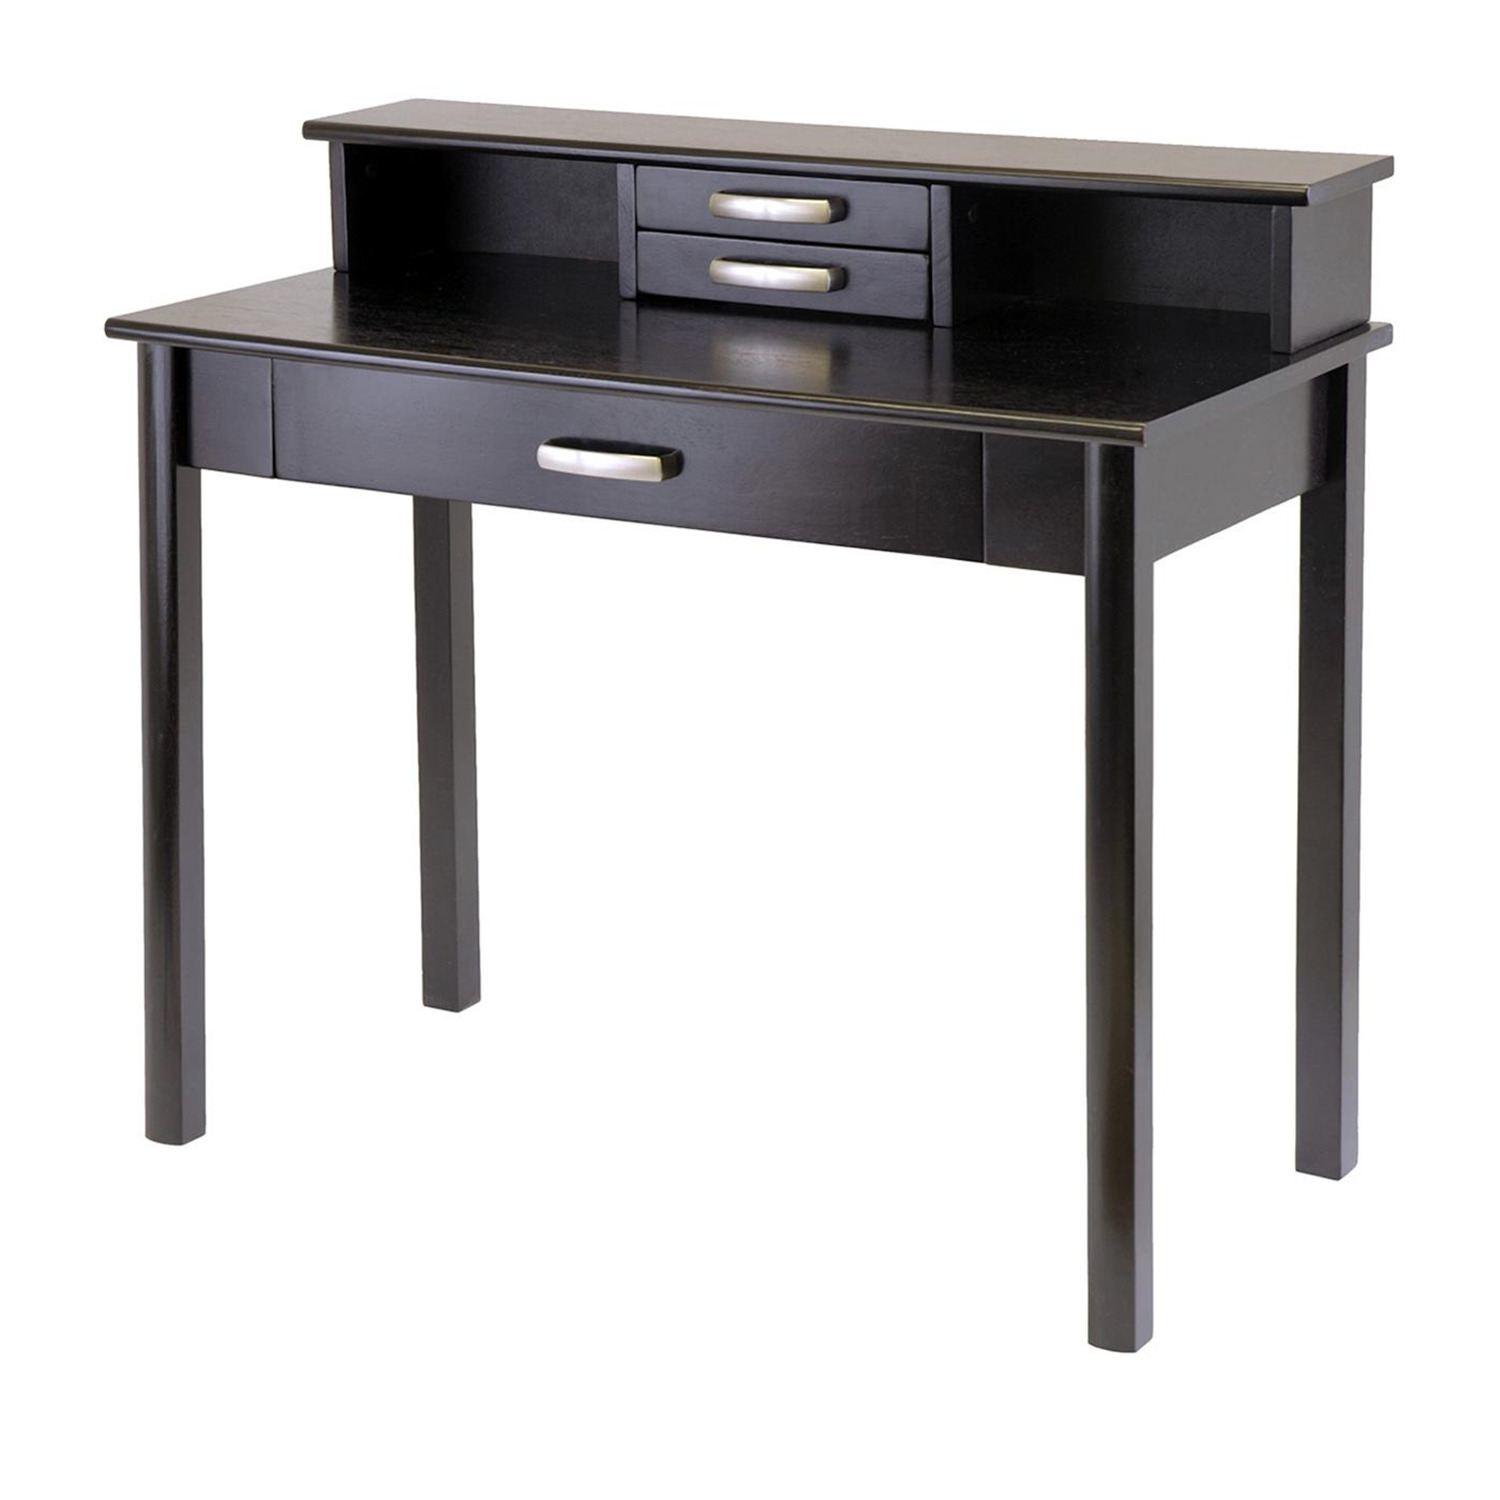 Superb img of  Office Set Computer Desk with Hutch by OJ Commerce 92271 $243.03 with #6F675C color and 1400x1400 pixels